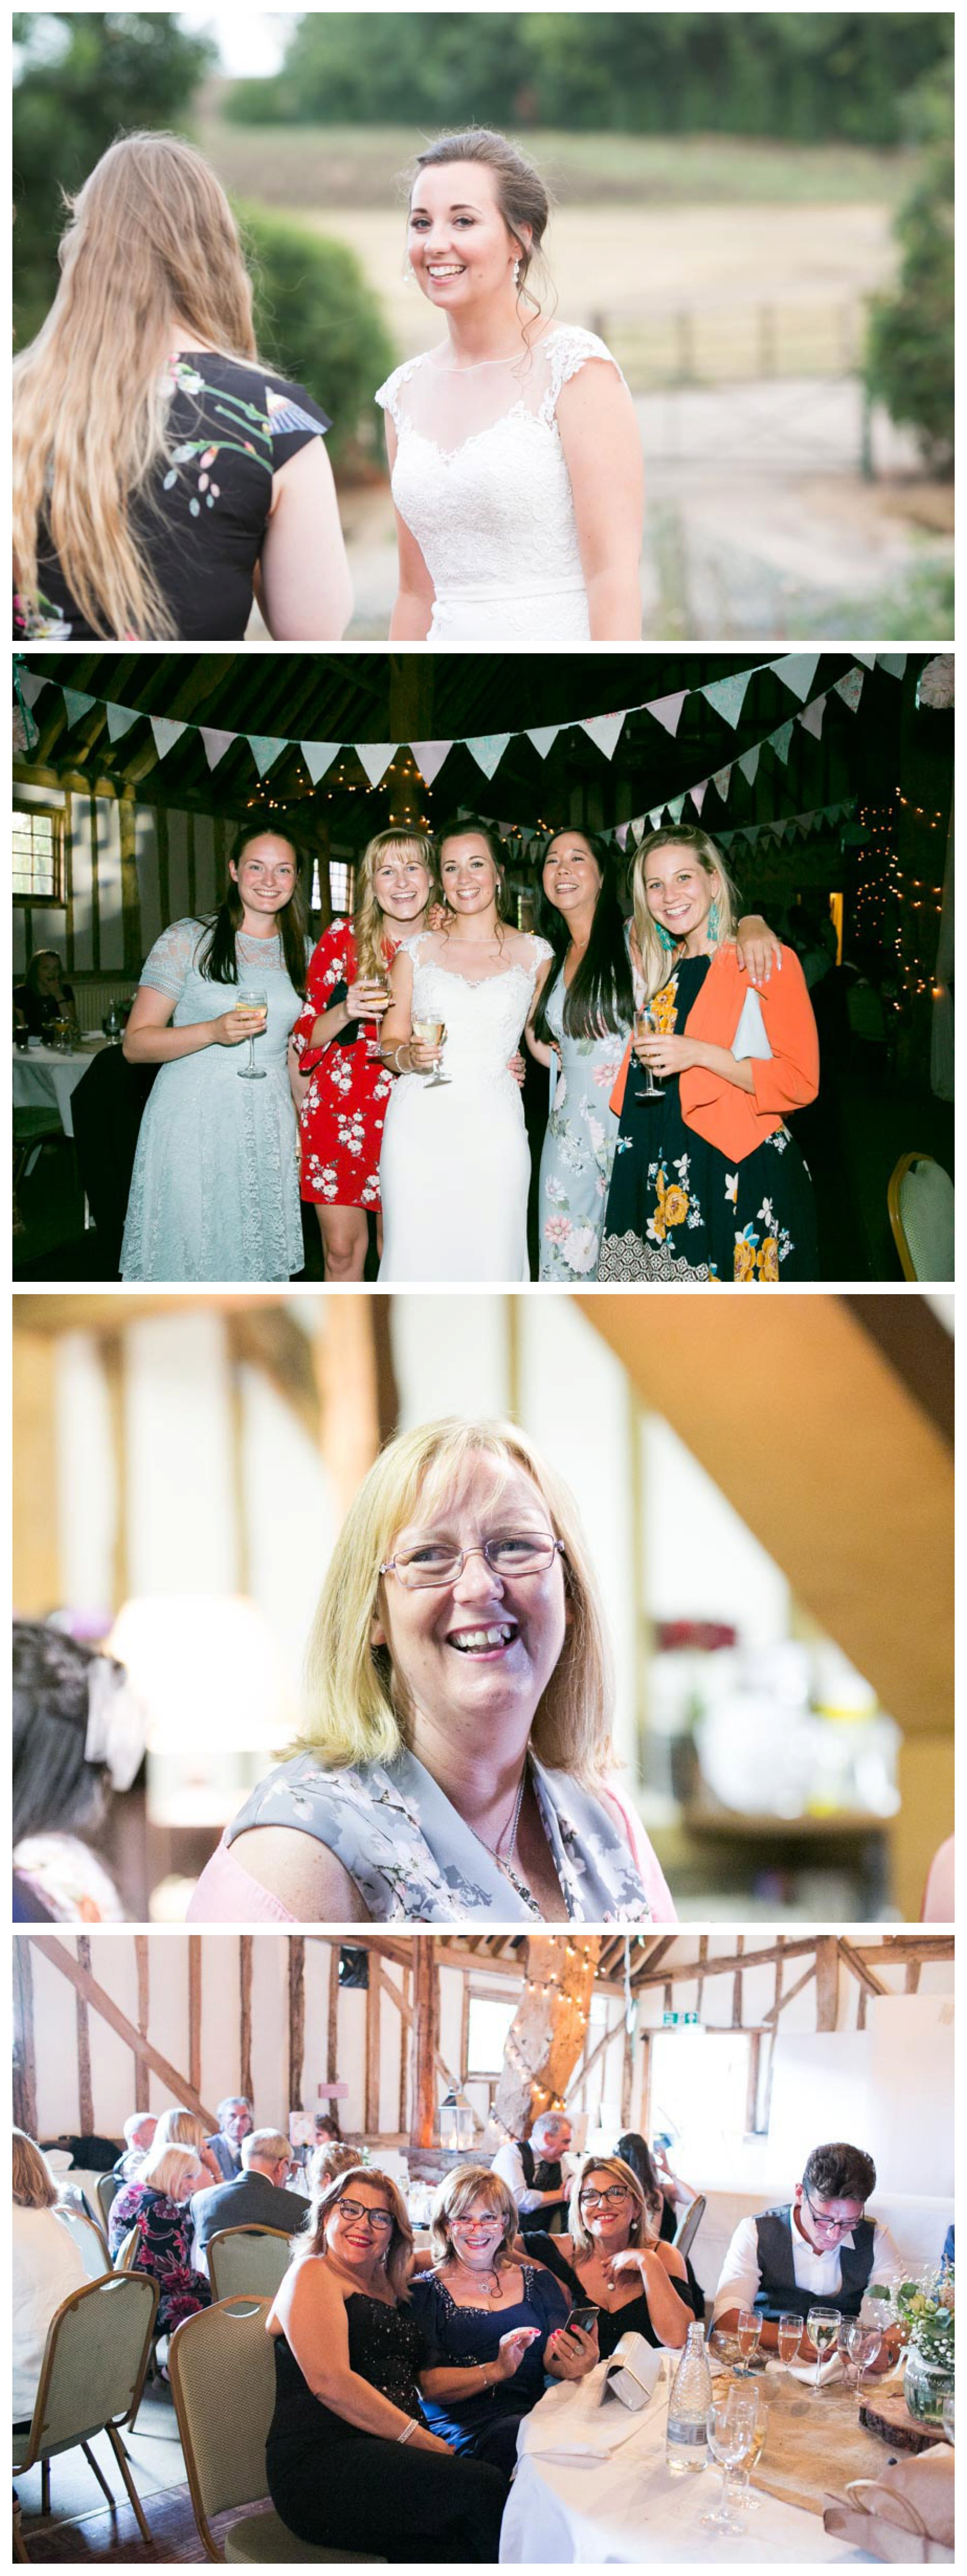 relaxed photos of guests at Essex Herts wedding